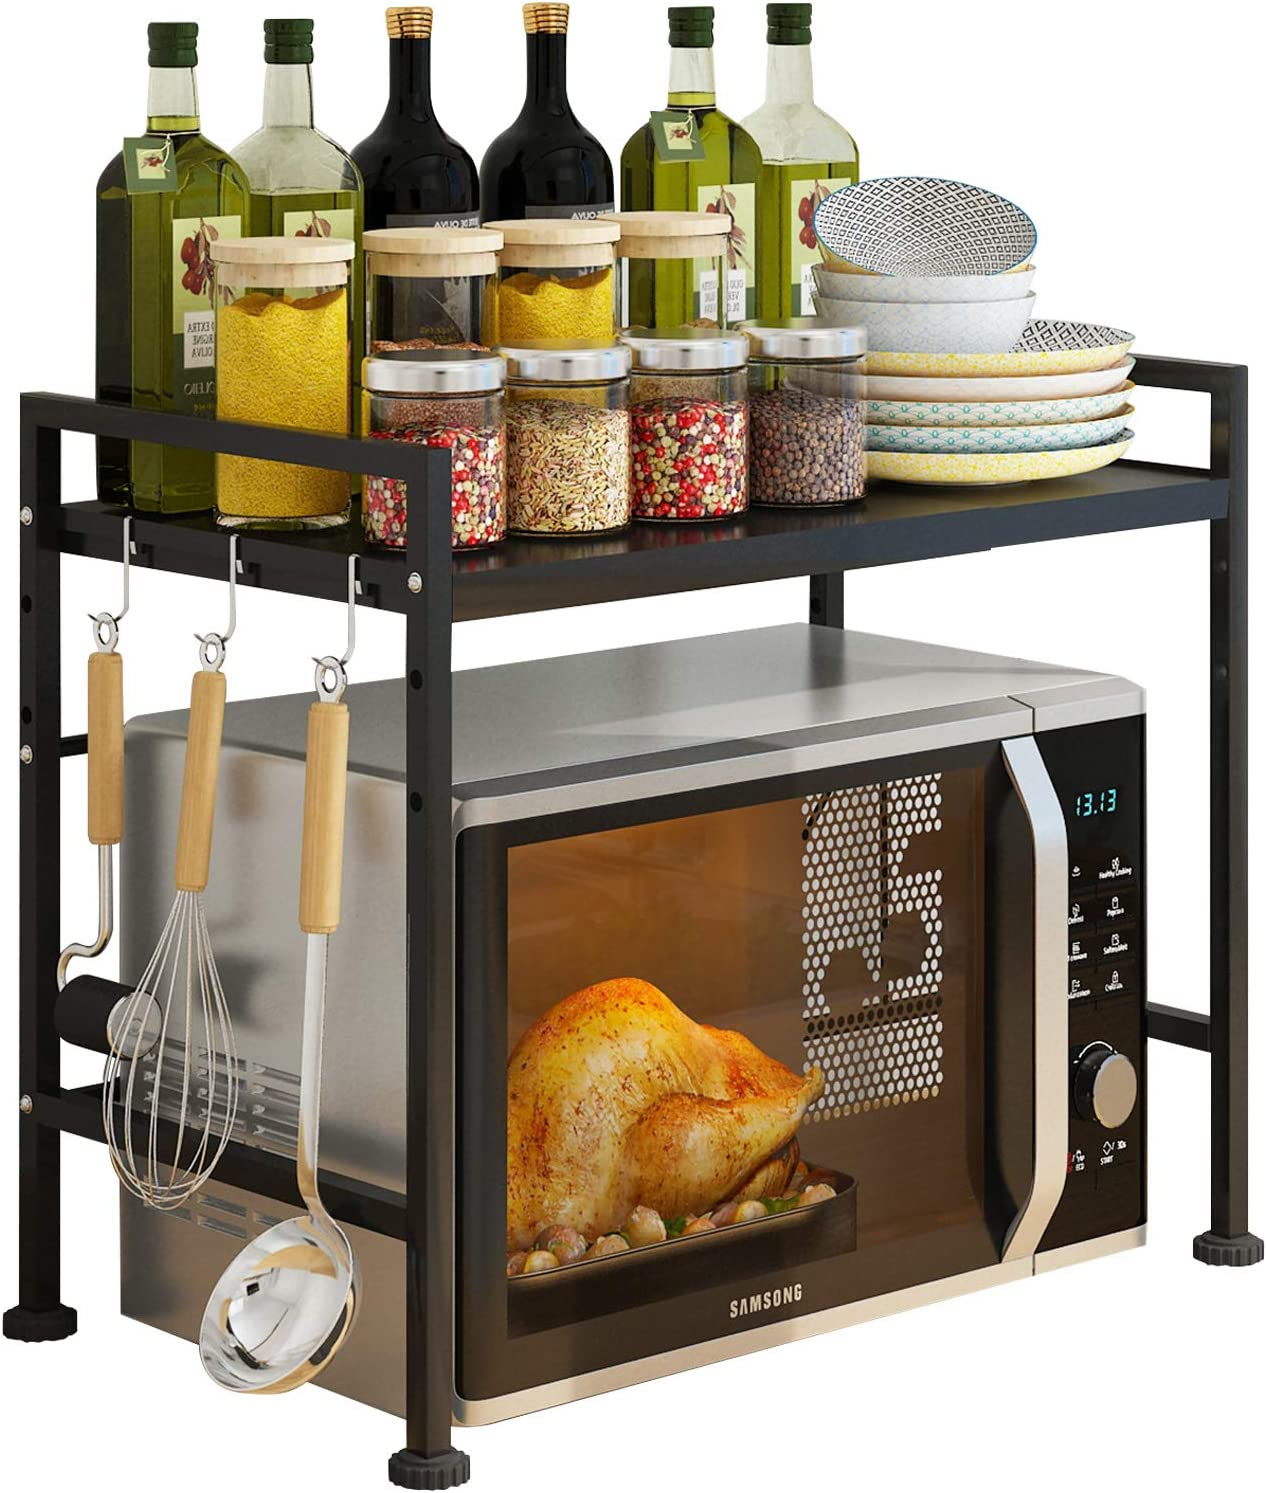 Expandable Microwave Oven Rack, AONUOJA 2-Tier Horizontal Extension Painted Carbon Steel Microwave Shelf, Kitchen Countertop Shelf with 3 Hooks, Counter Shelf Stand (Black)